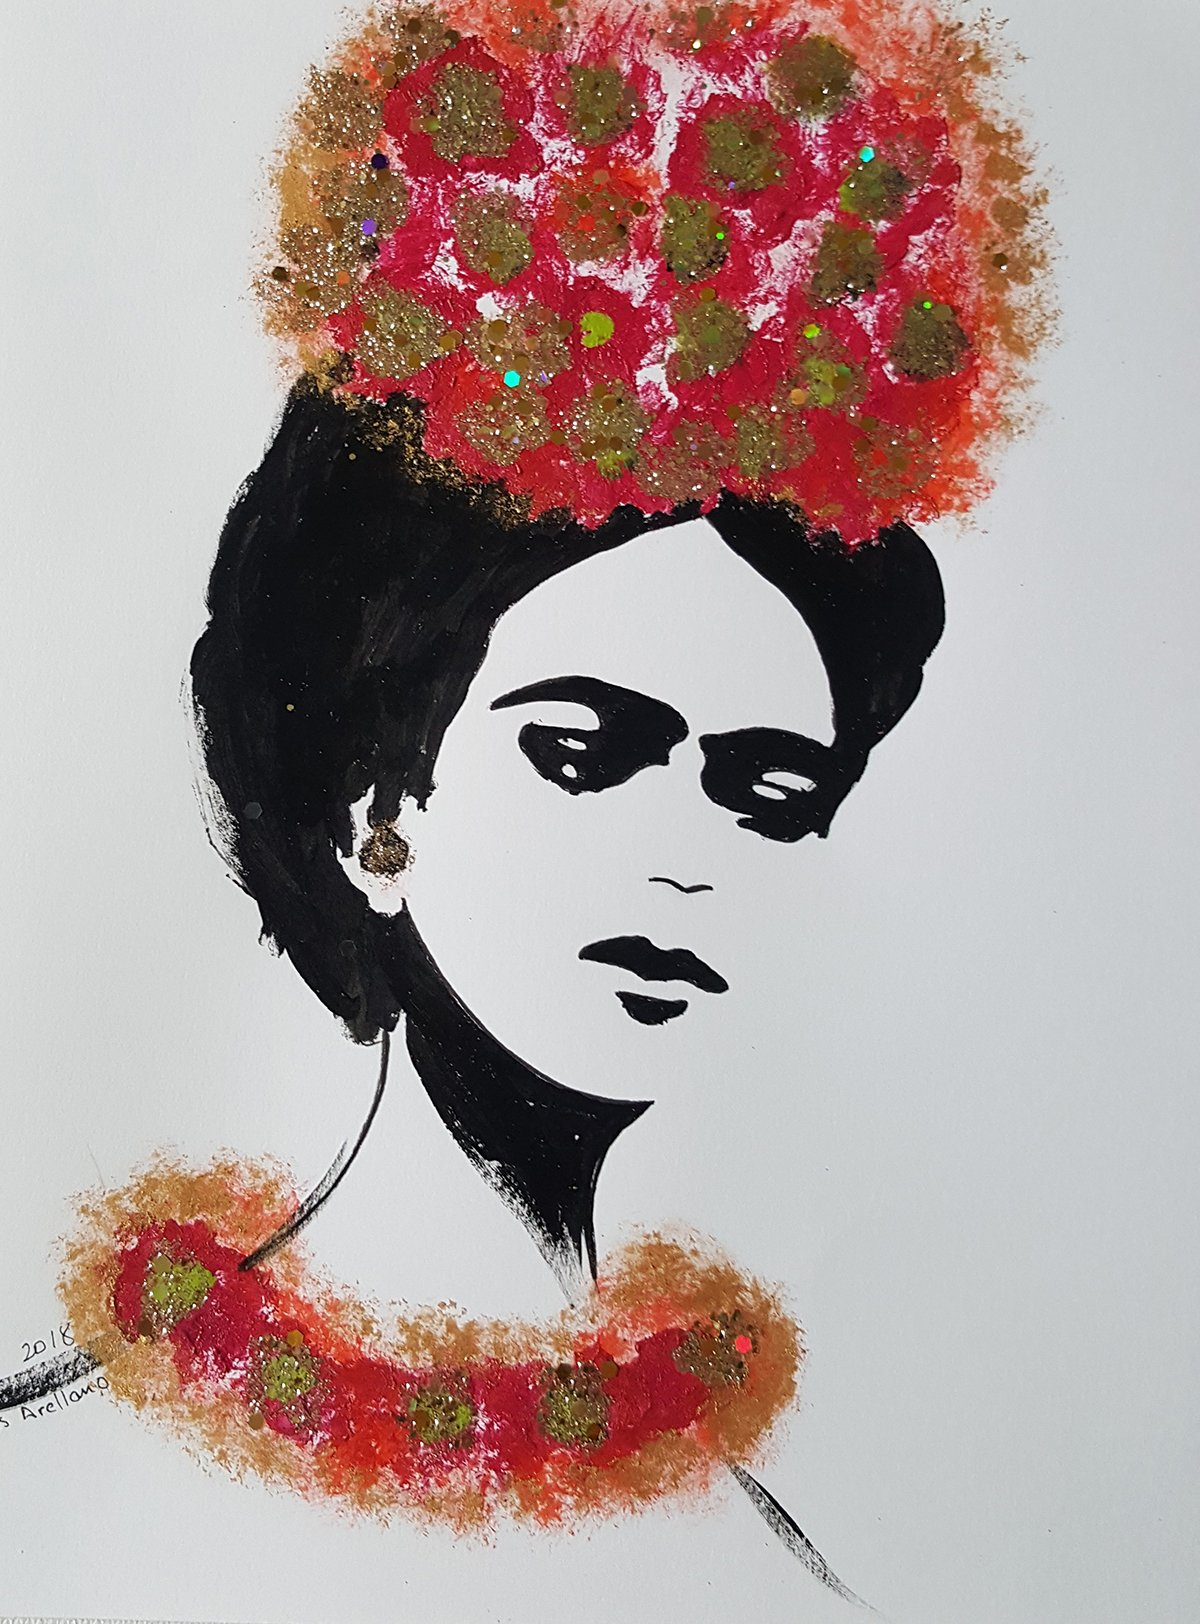 FRIDA KAHLO - RED FLOWERS - Abstract - POP - MEXICAN FOLK ART Style :: ORIGINAL PAINTING - Acrylics and Ink - Modern Painting on Heavy White Paper - SIZE:11''x8.5'' - Signed by the Artist by Santos Arellano - Art & Crafts